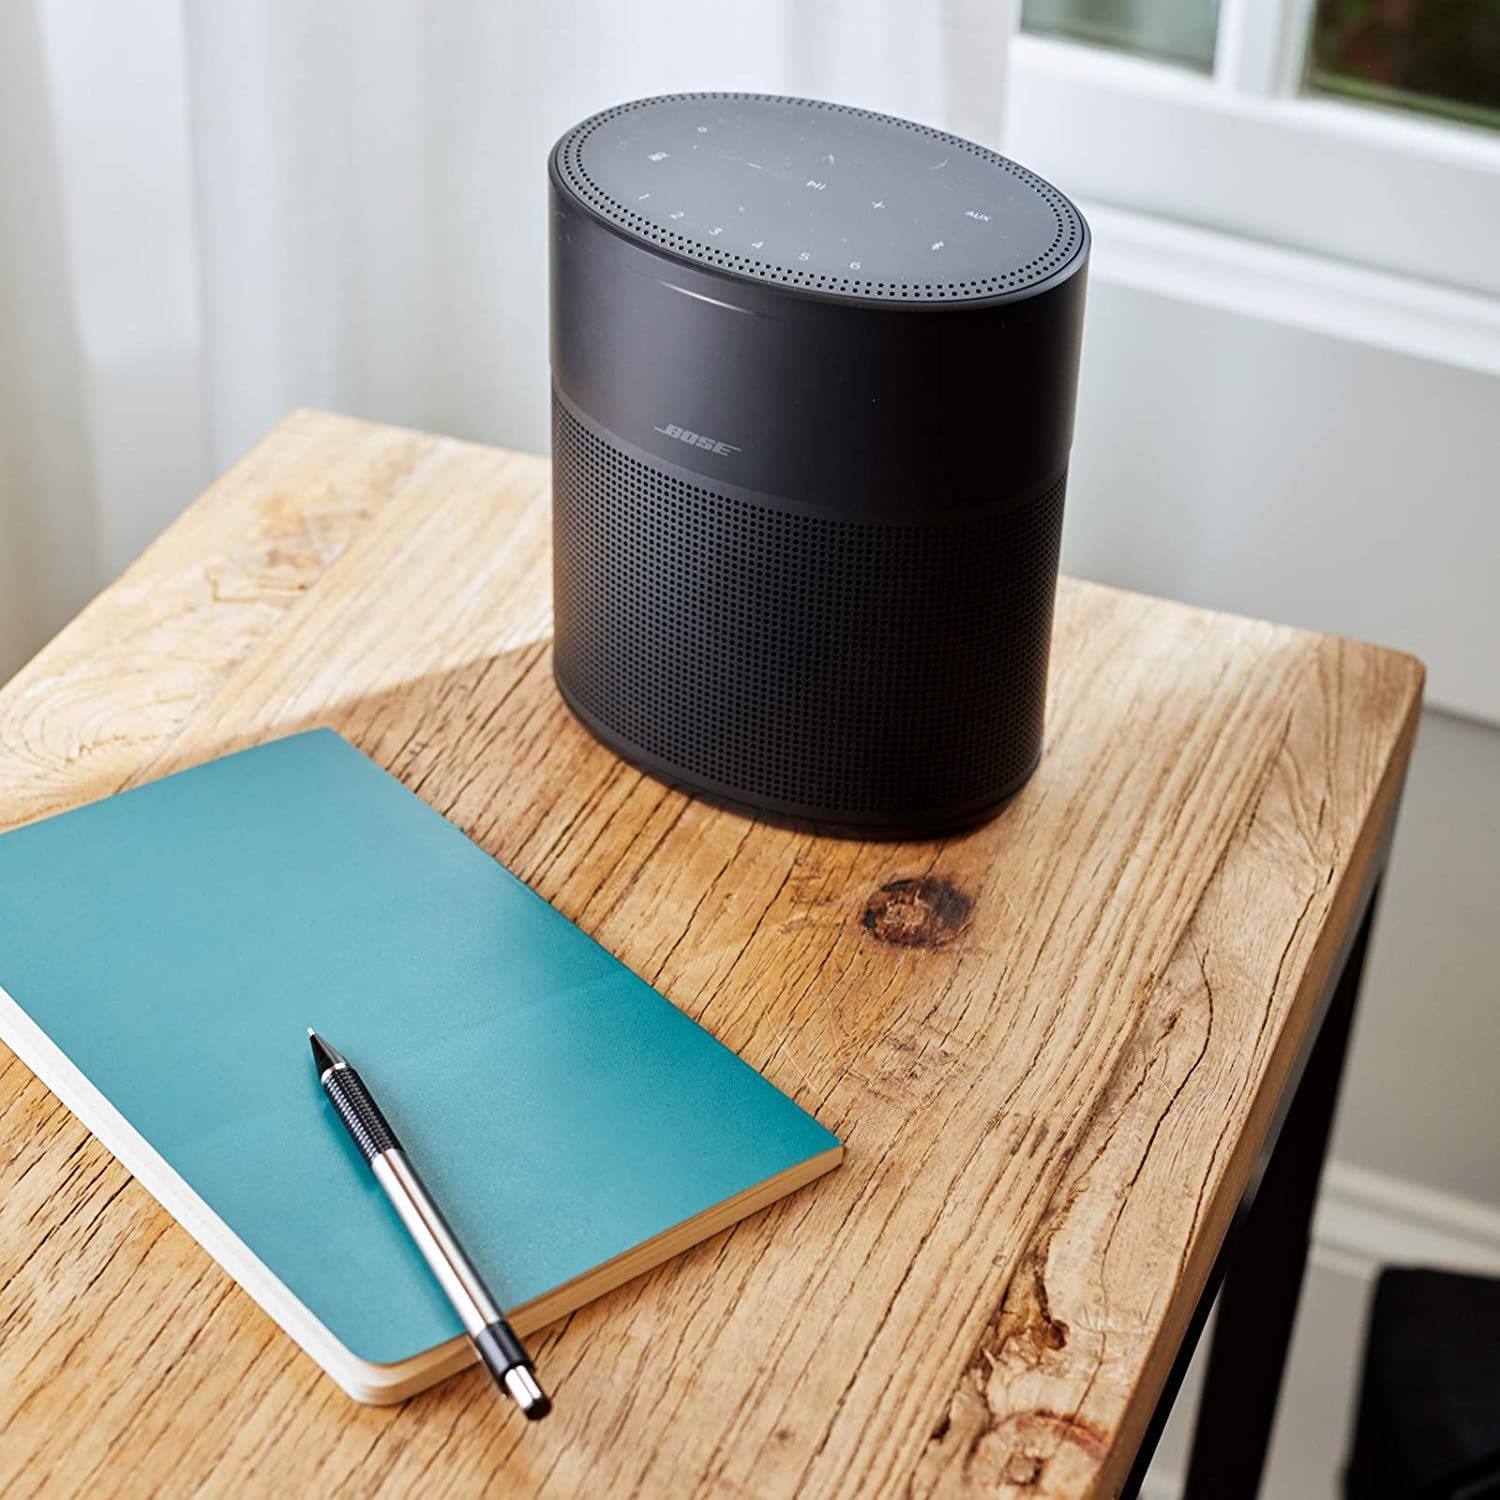 Review of Bose Home Speaker 300, with Amazon Alexa Built-in, Black